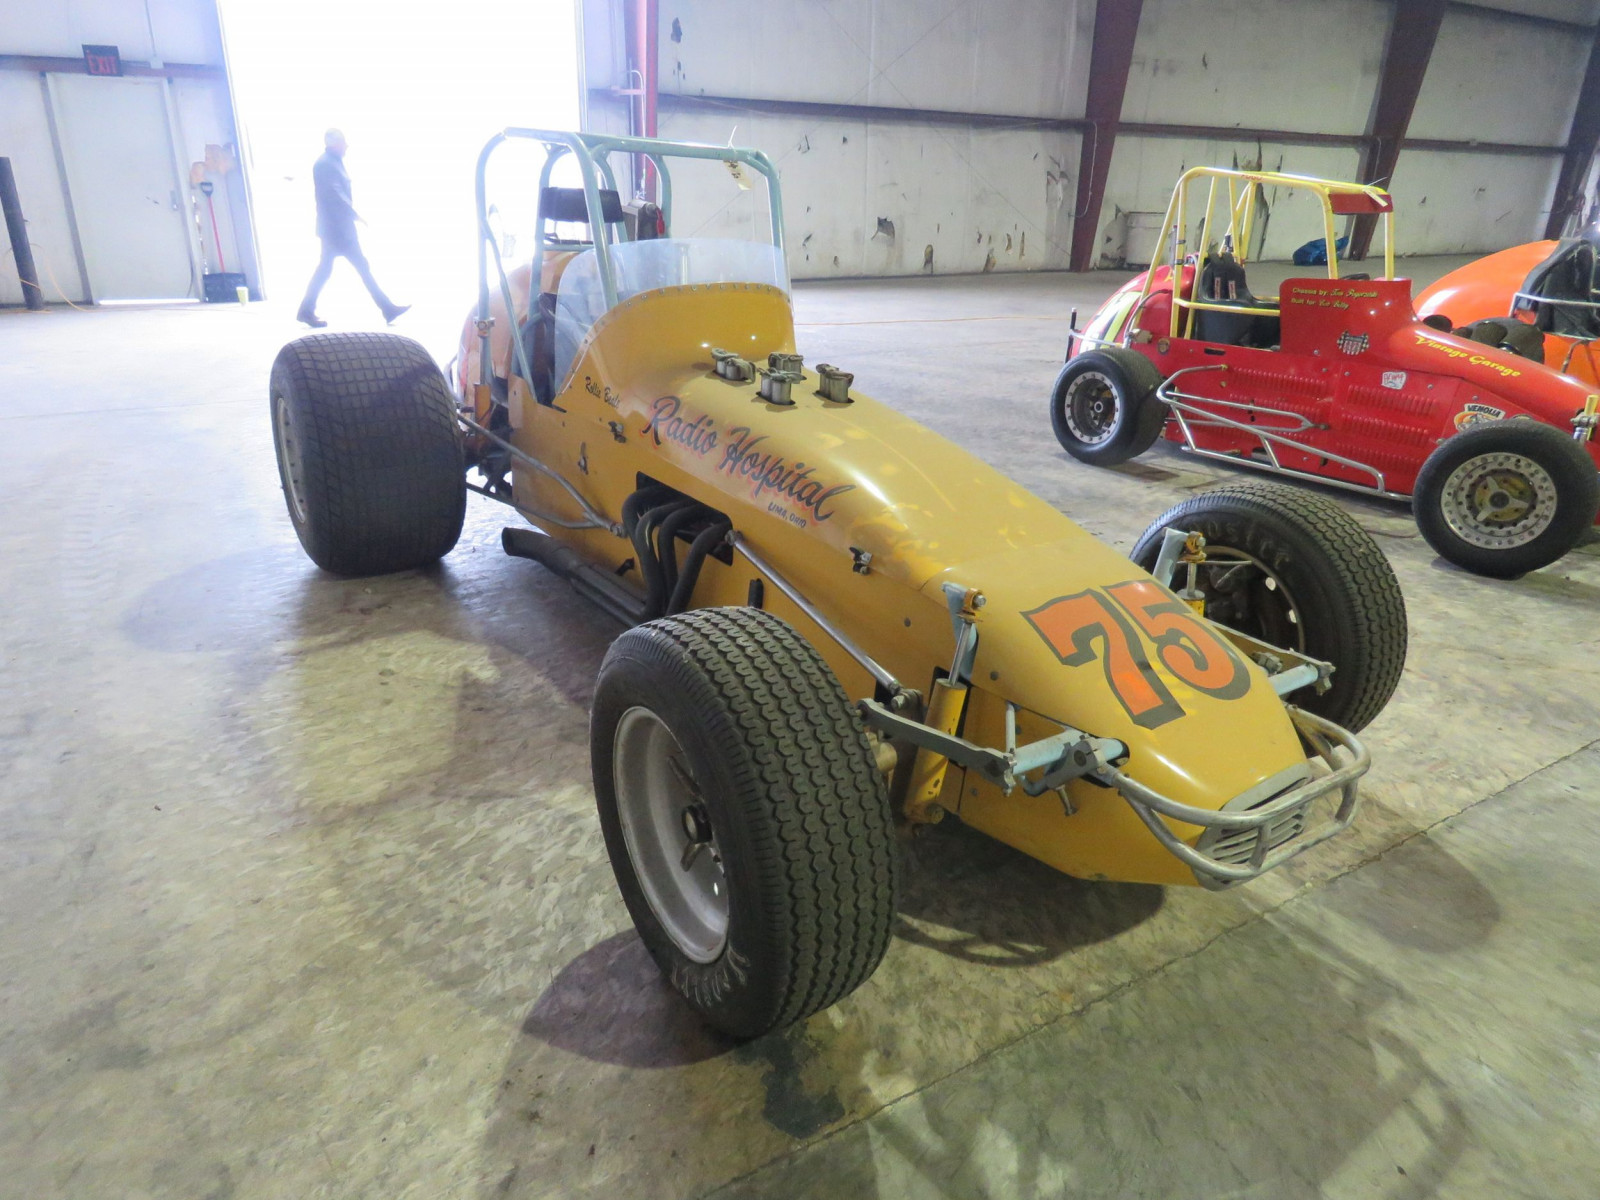 1972 fuel Injected Midget Race Car - Image 3